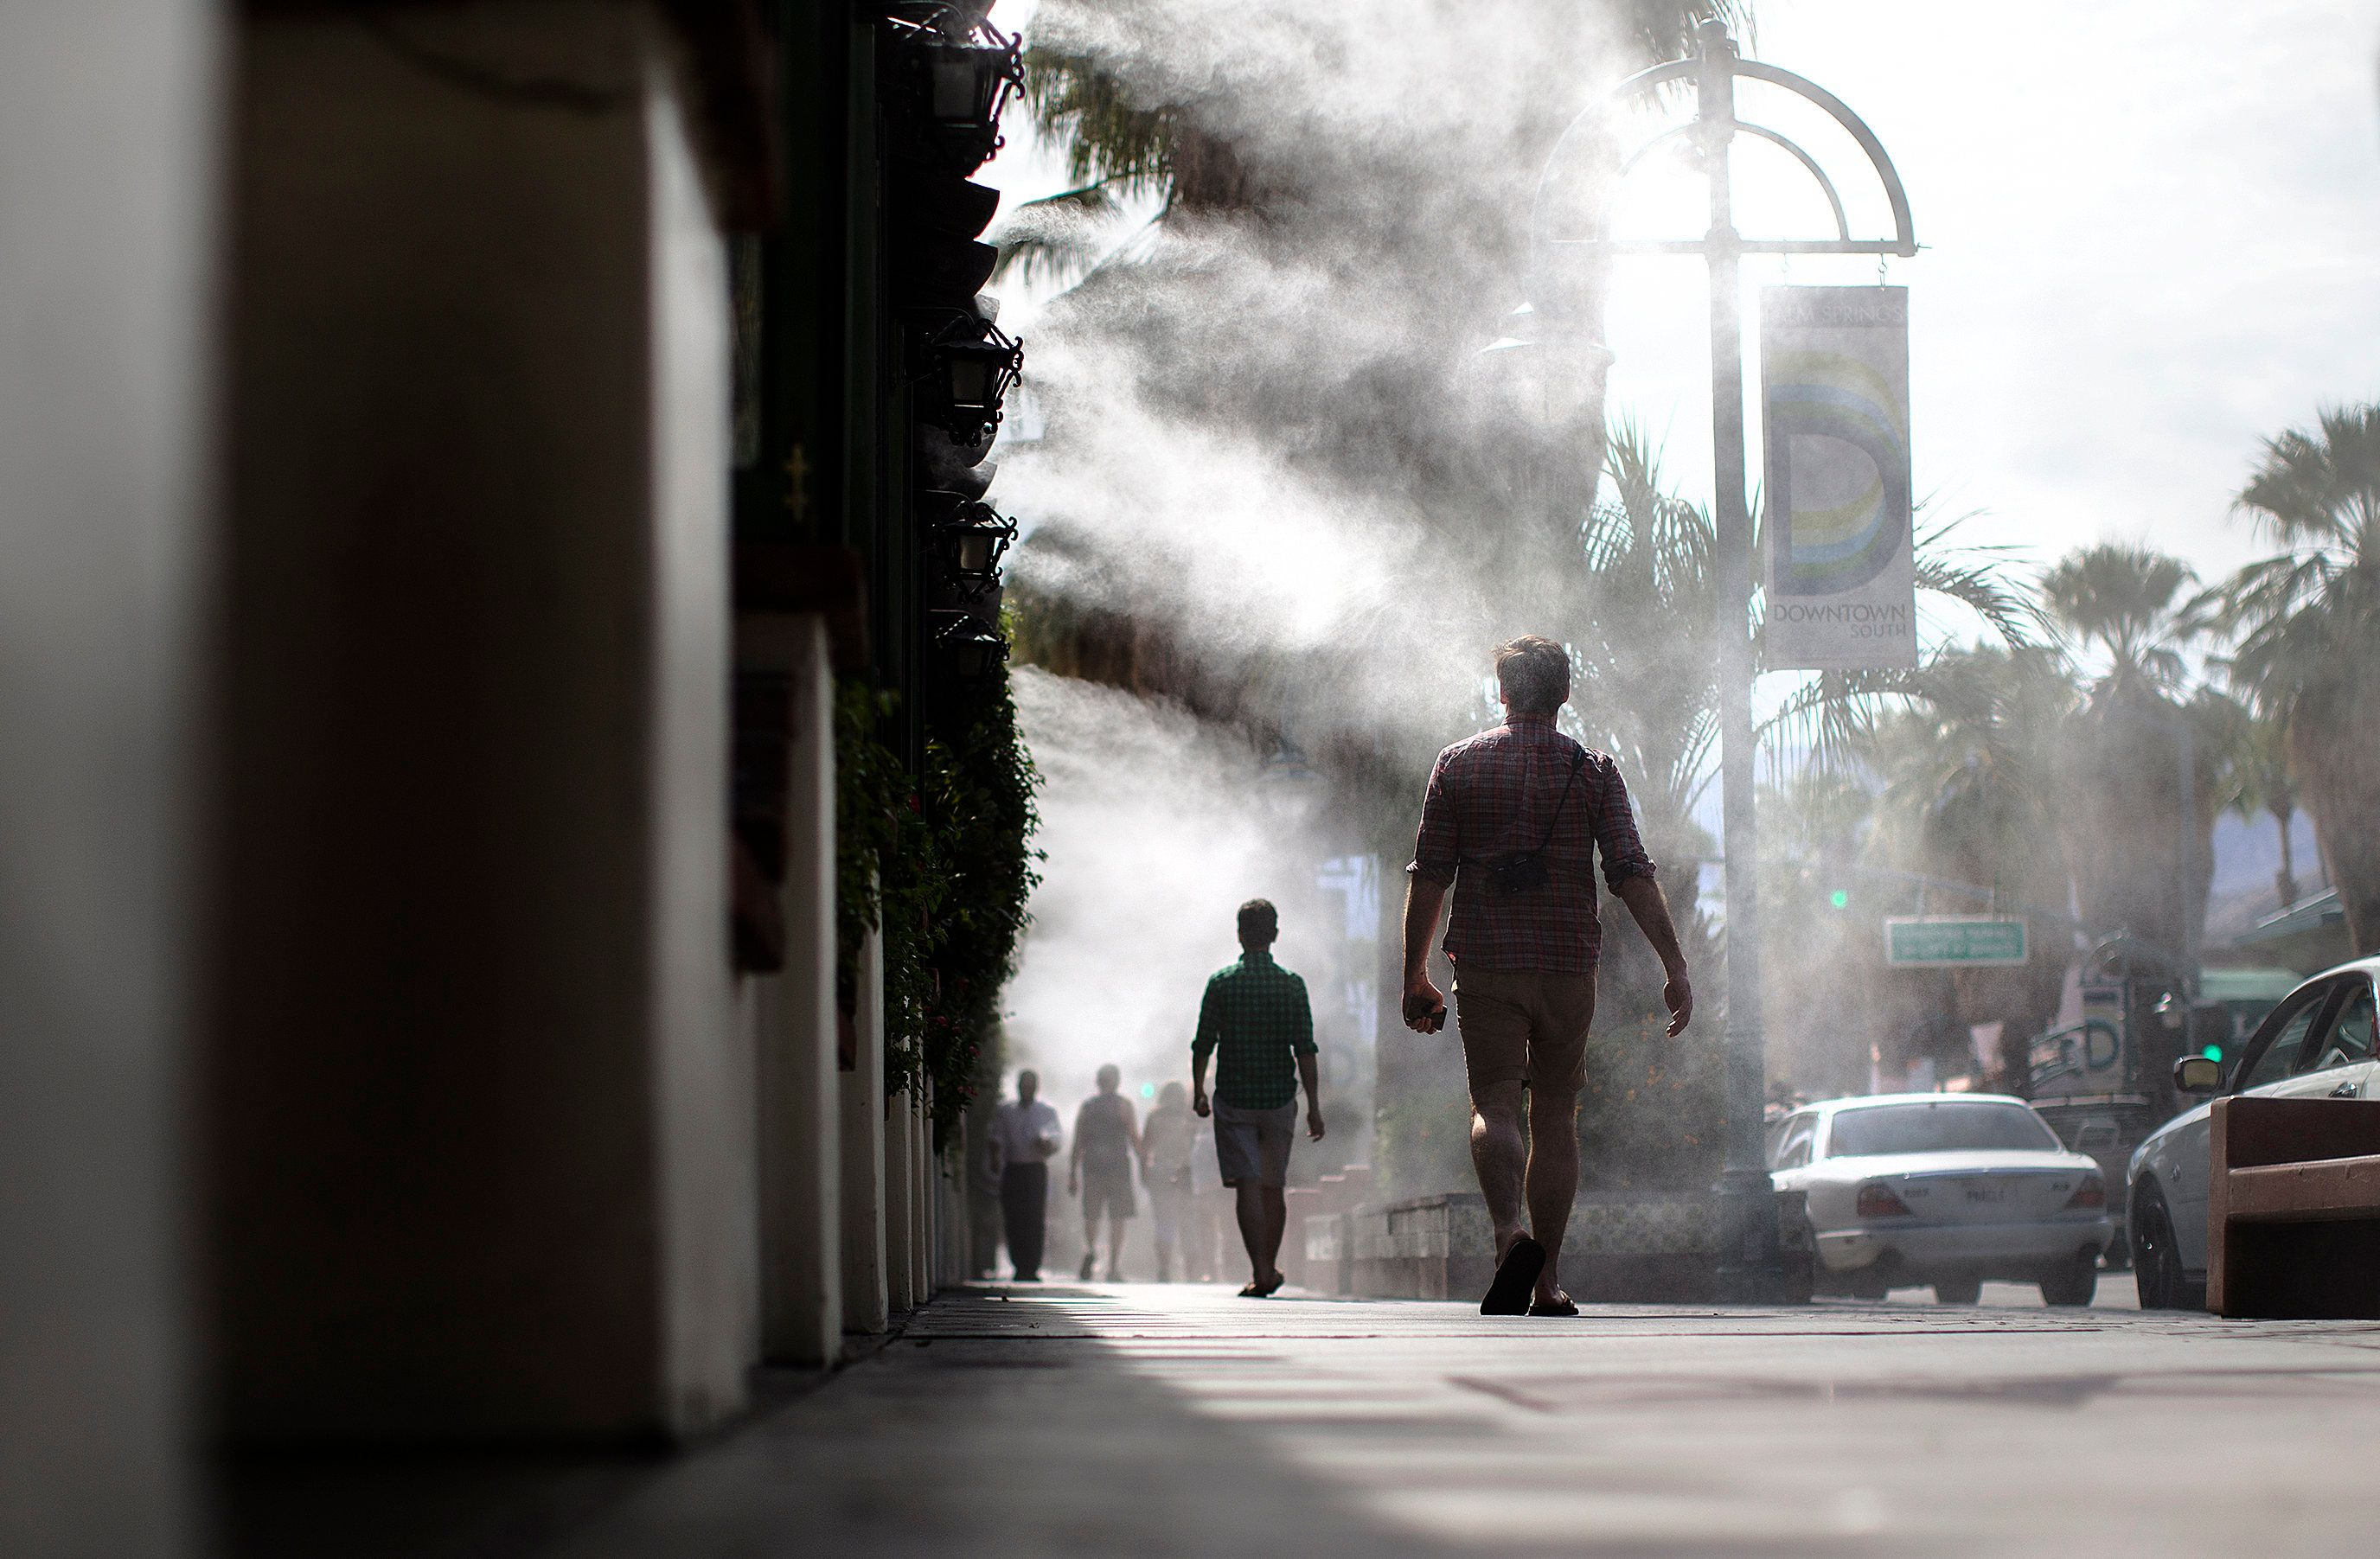 Pedestrians walk under cooling misters in Palm Springs, California, where the temperatures reached the high 90s on Oct. 12, 2